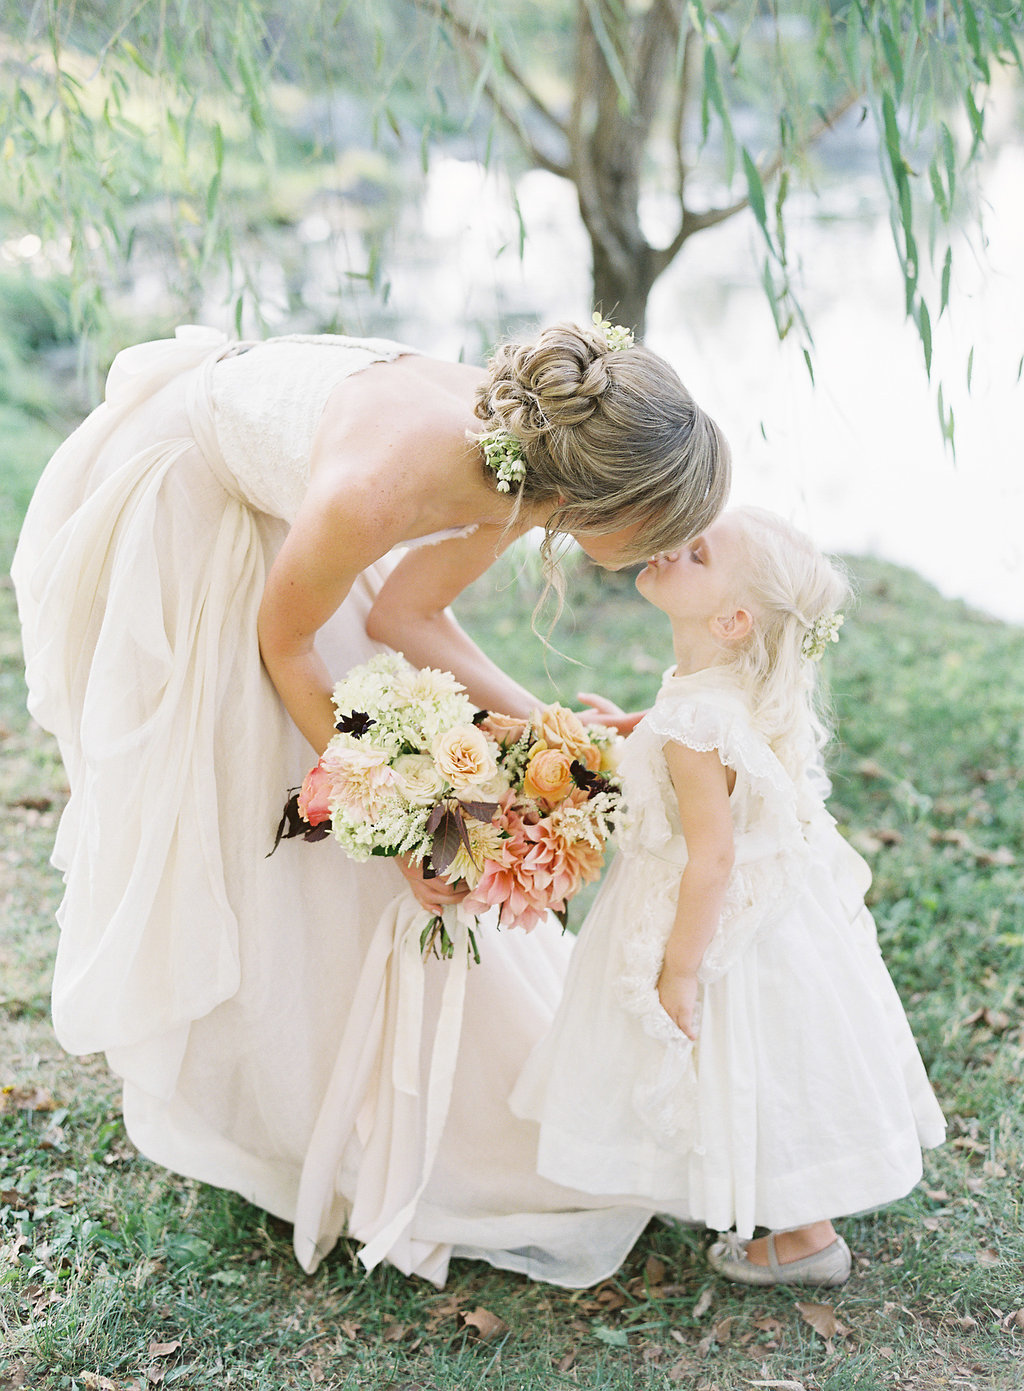 SawyerBaird_CM_ Flower girl kiss